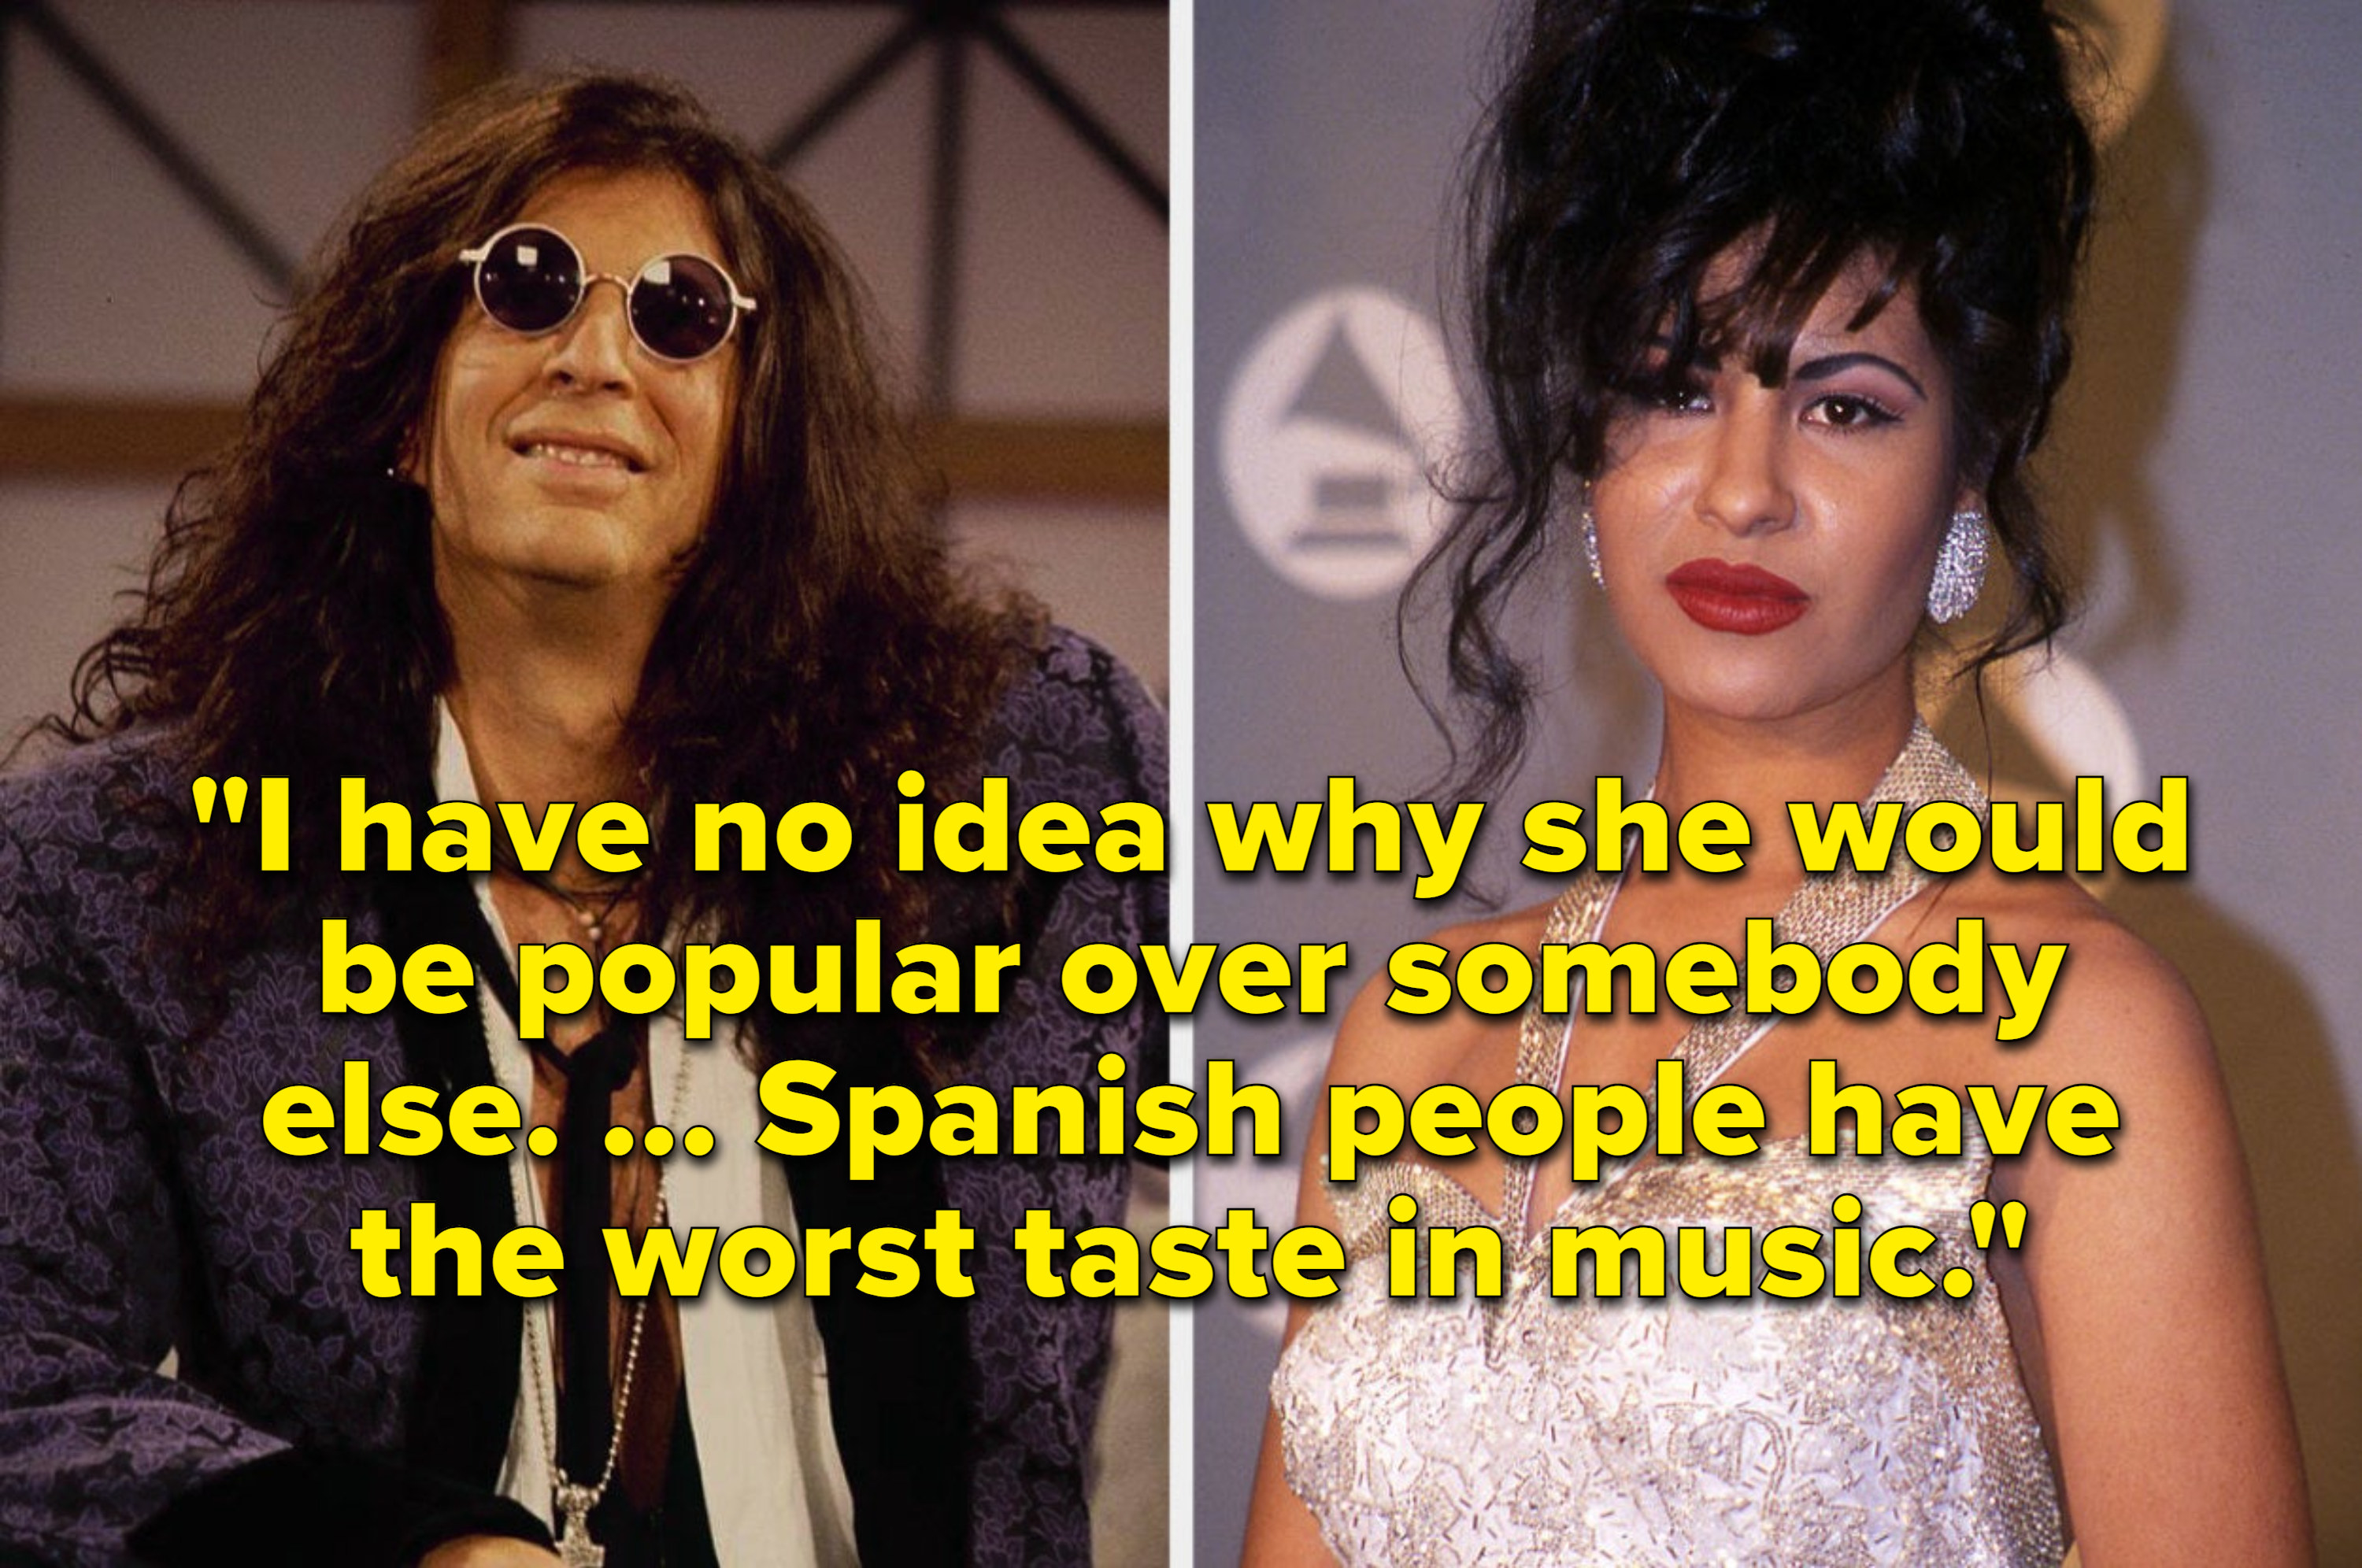 Howard's comment: I have no idea why she would be popular over somebody else. Spanish people have the worst taste in music